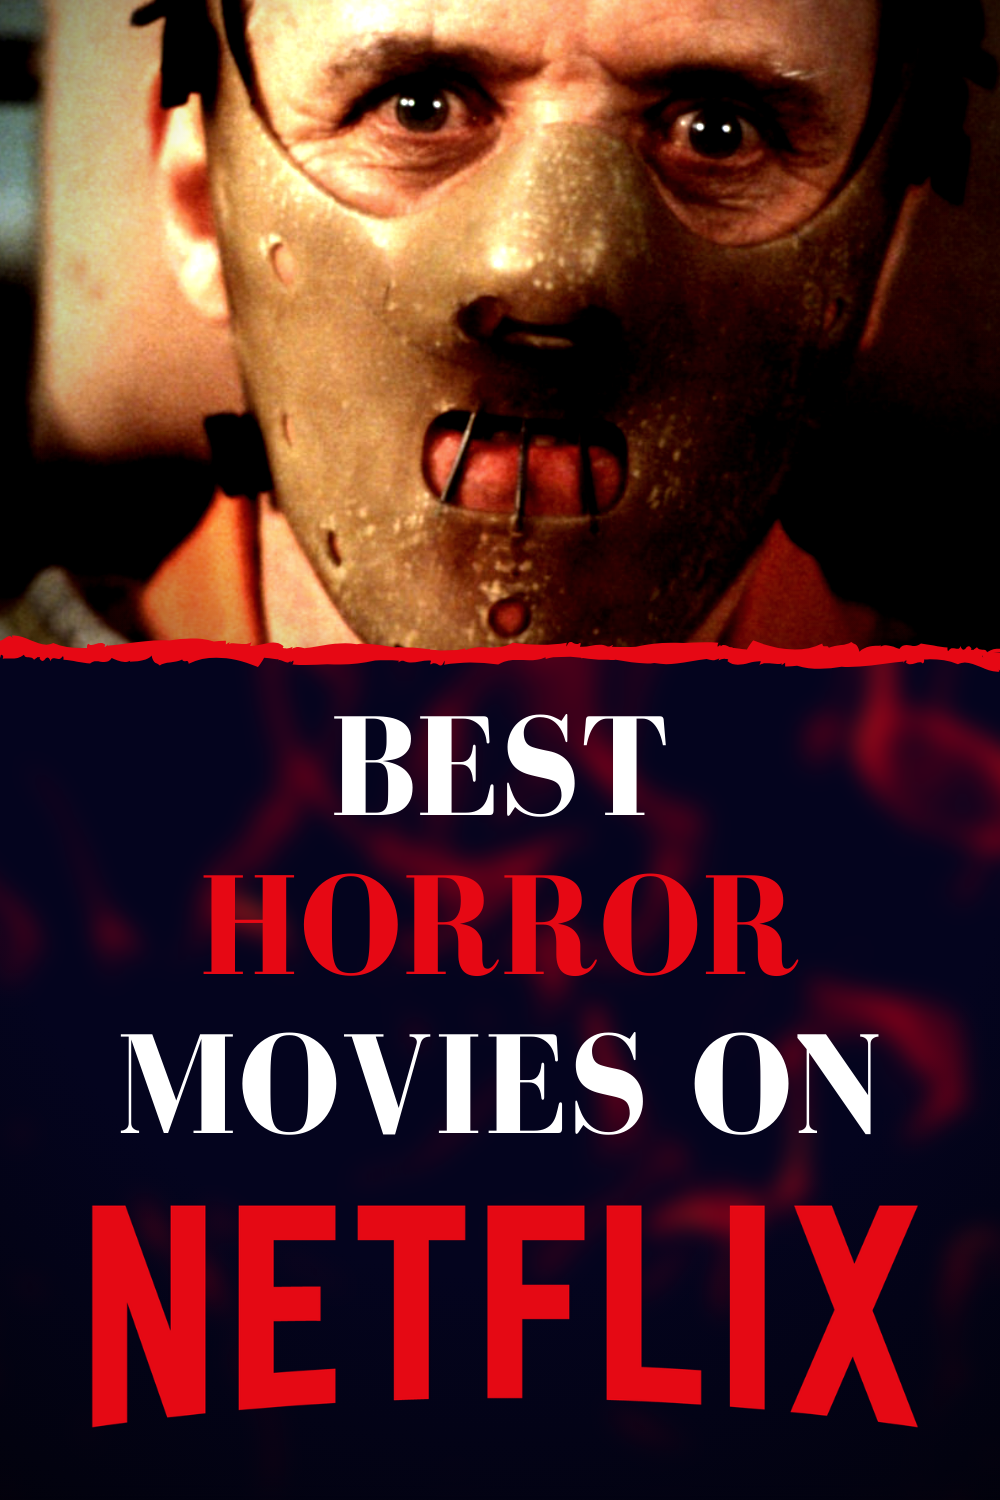 BEST HORROR MOVIES ON NETFLIX! in 2020 Best horrors